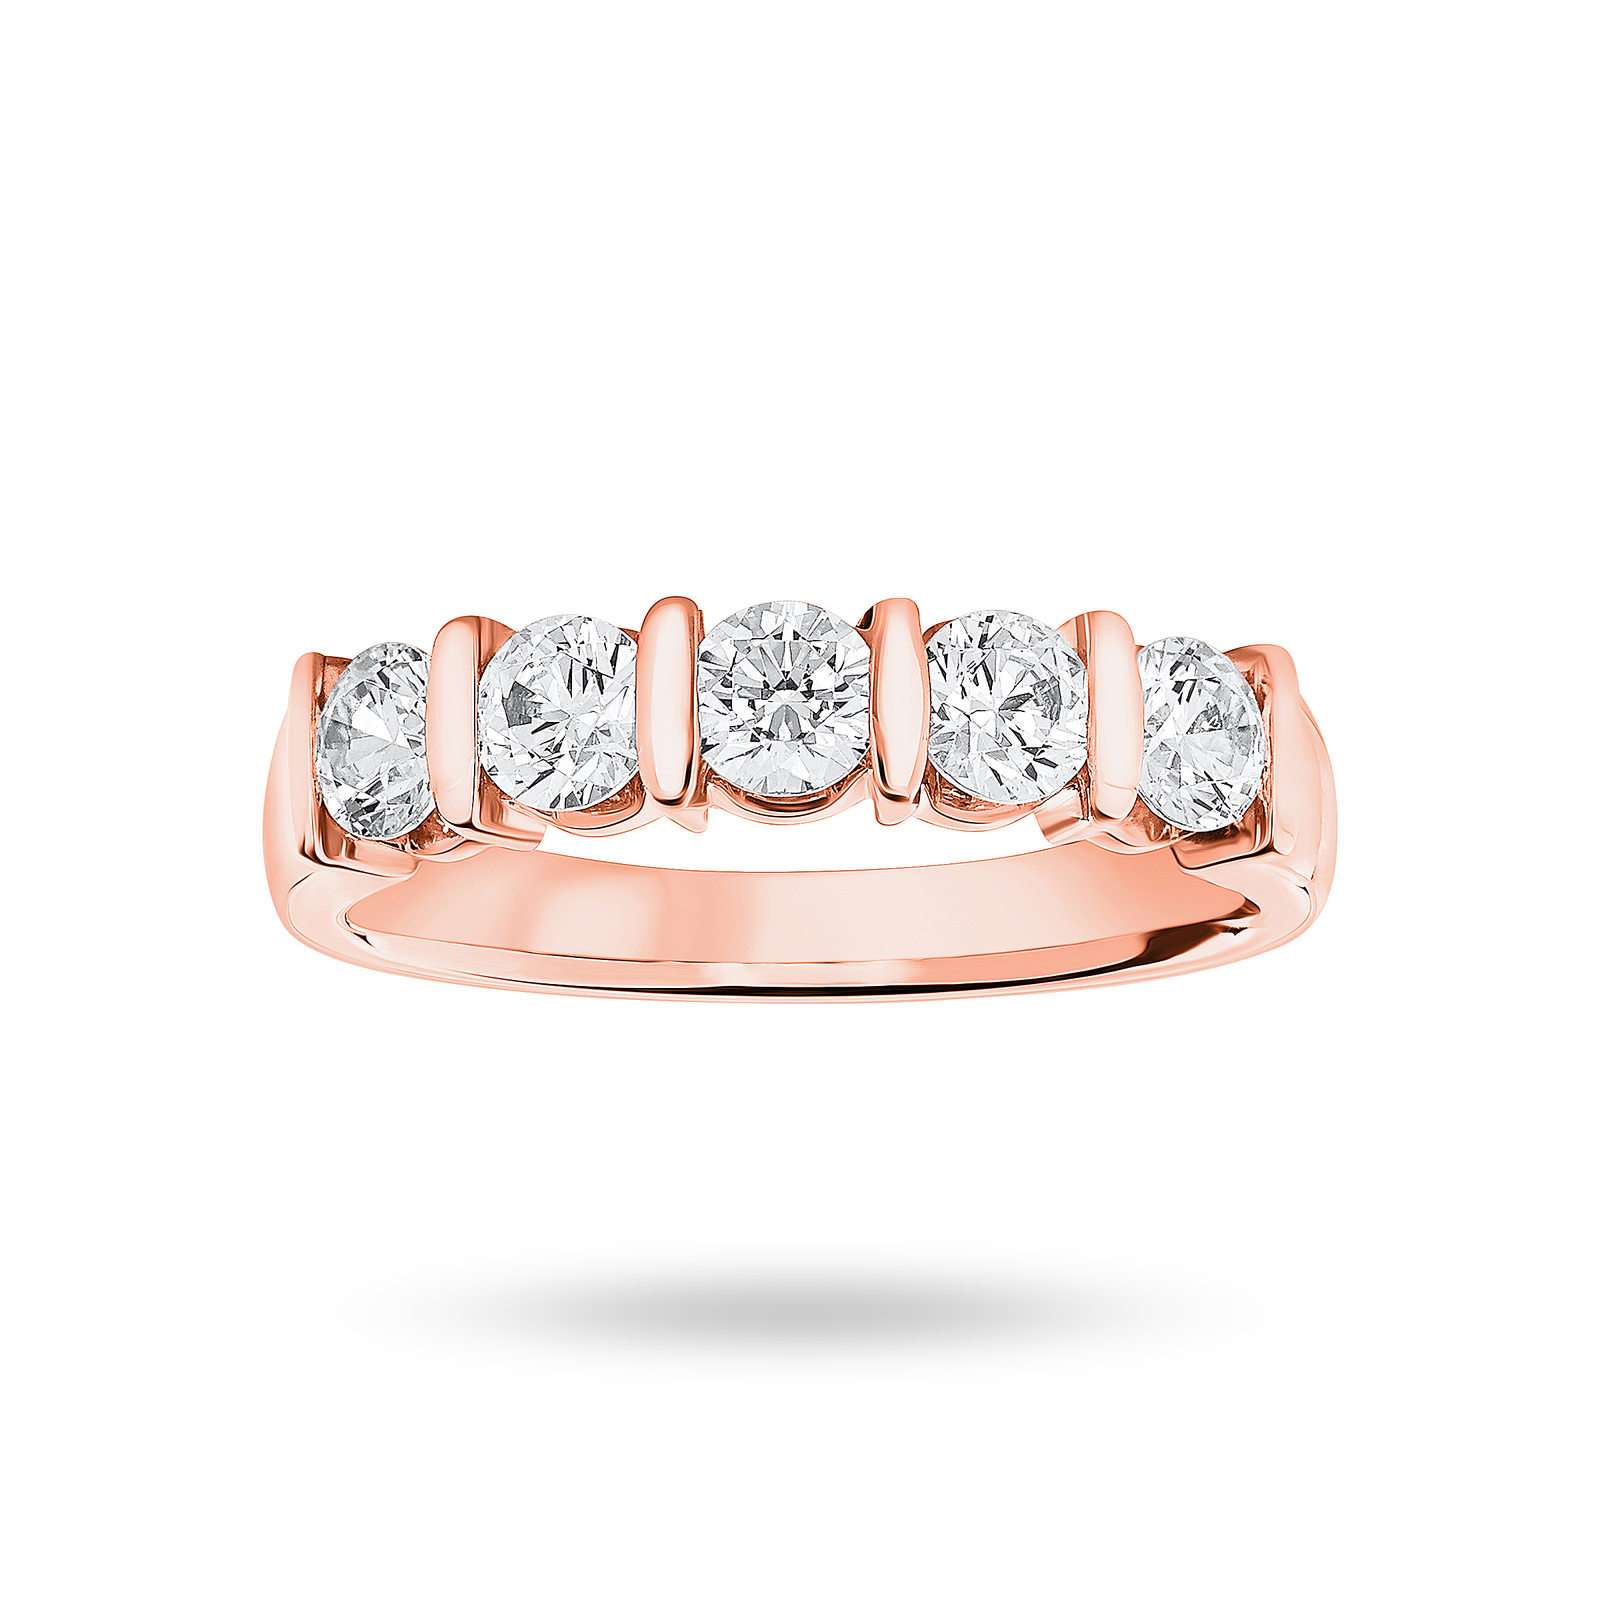 18 Carat Rose Gold 0.90 Carat Brilliant Cut Bar Half Eternity Ring